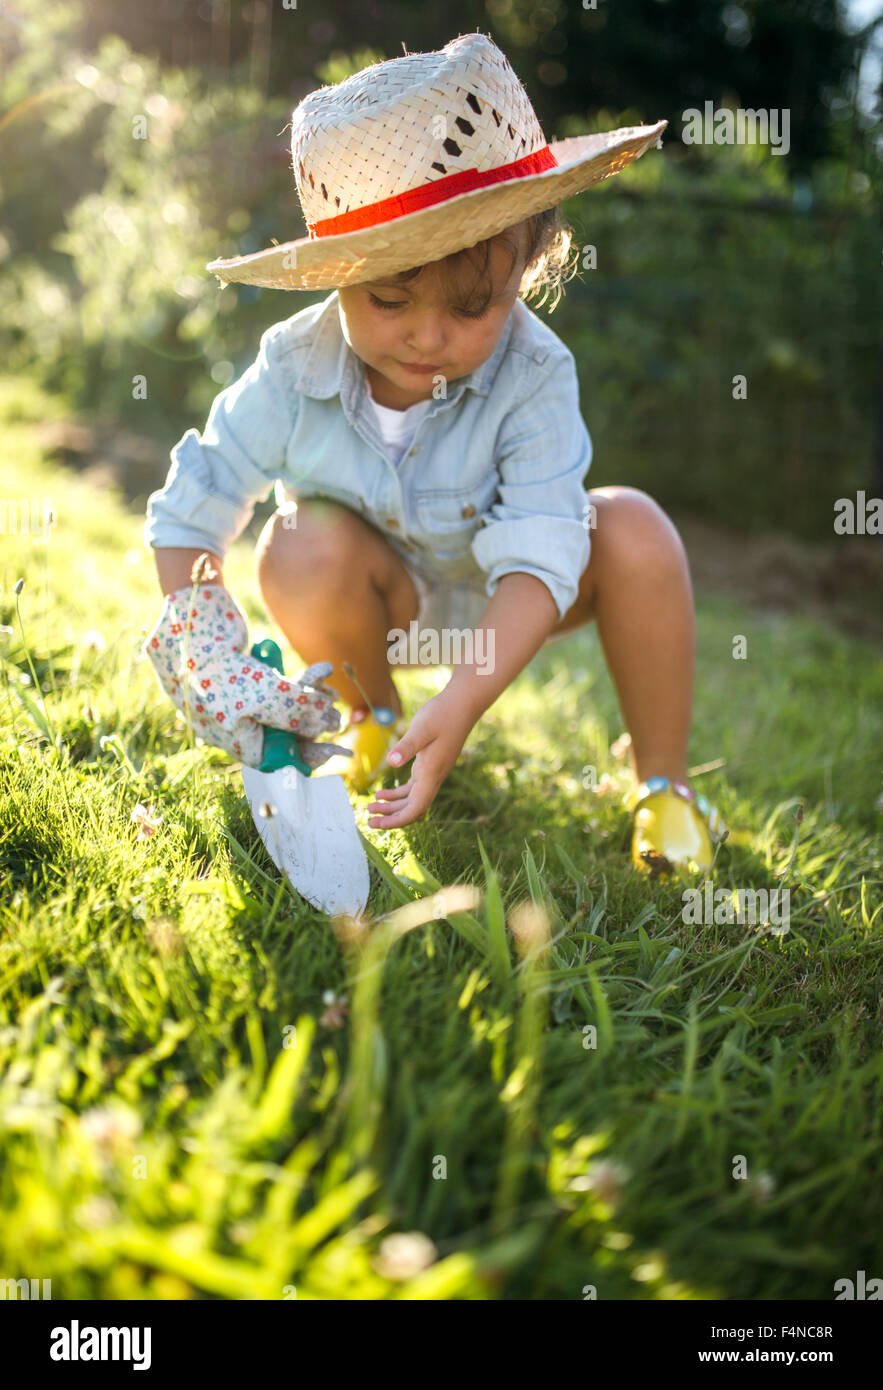 Little girl crouching with gardening glove and hand trowel on a meadow - Stock Image